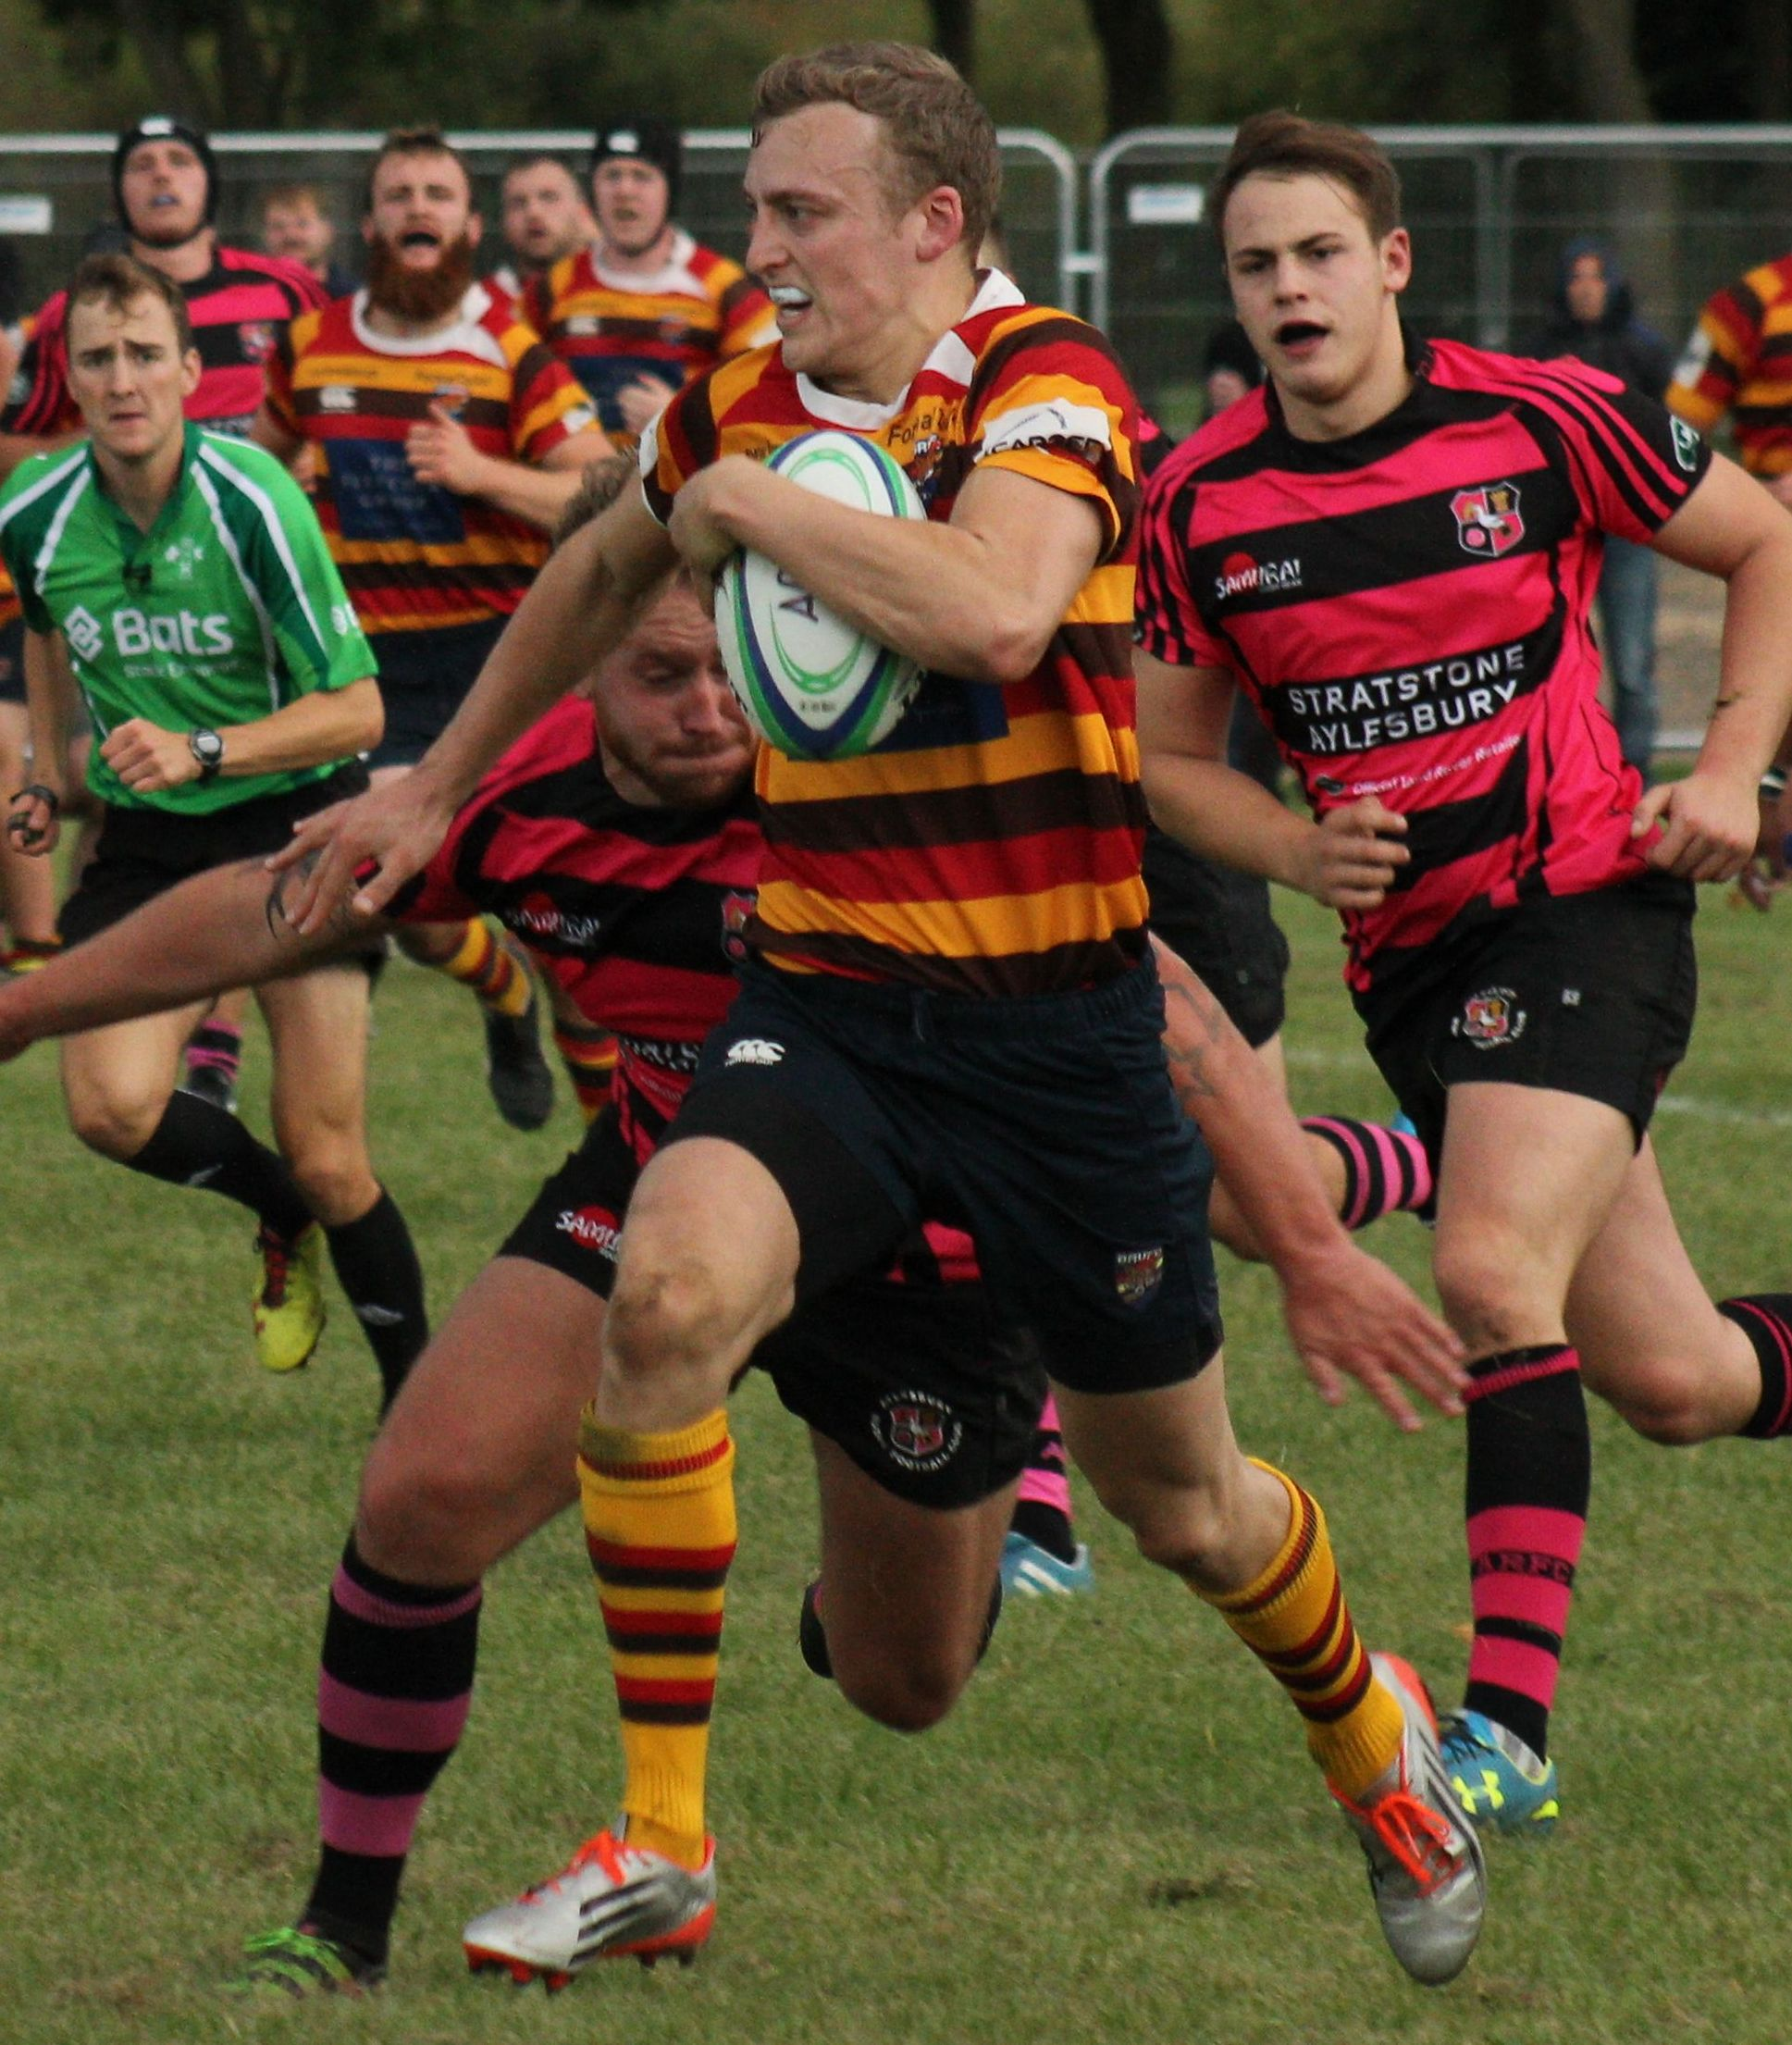 RUGBY UNION: Peter Tarrega in top form as Bicester beat Aylesbury - Bicester Advertiser